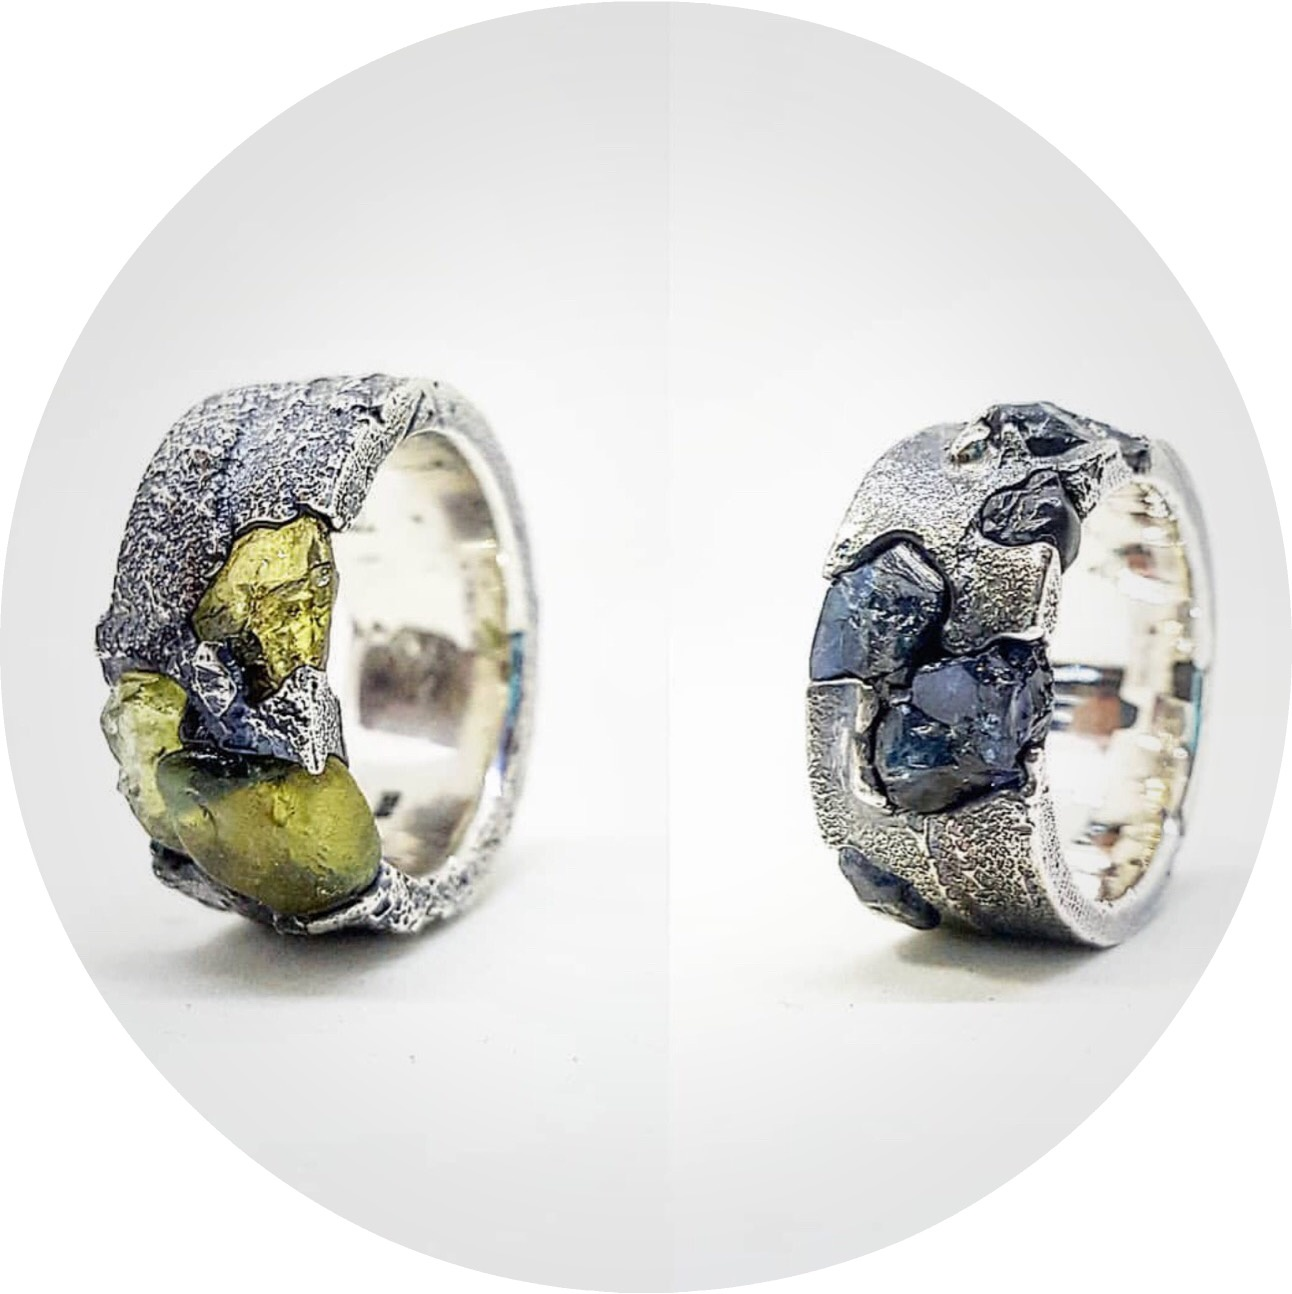 UNEARTHED- Sand Casting and rough Sapphires. With  August Artist in residence Kirra-lea Caynes.